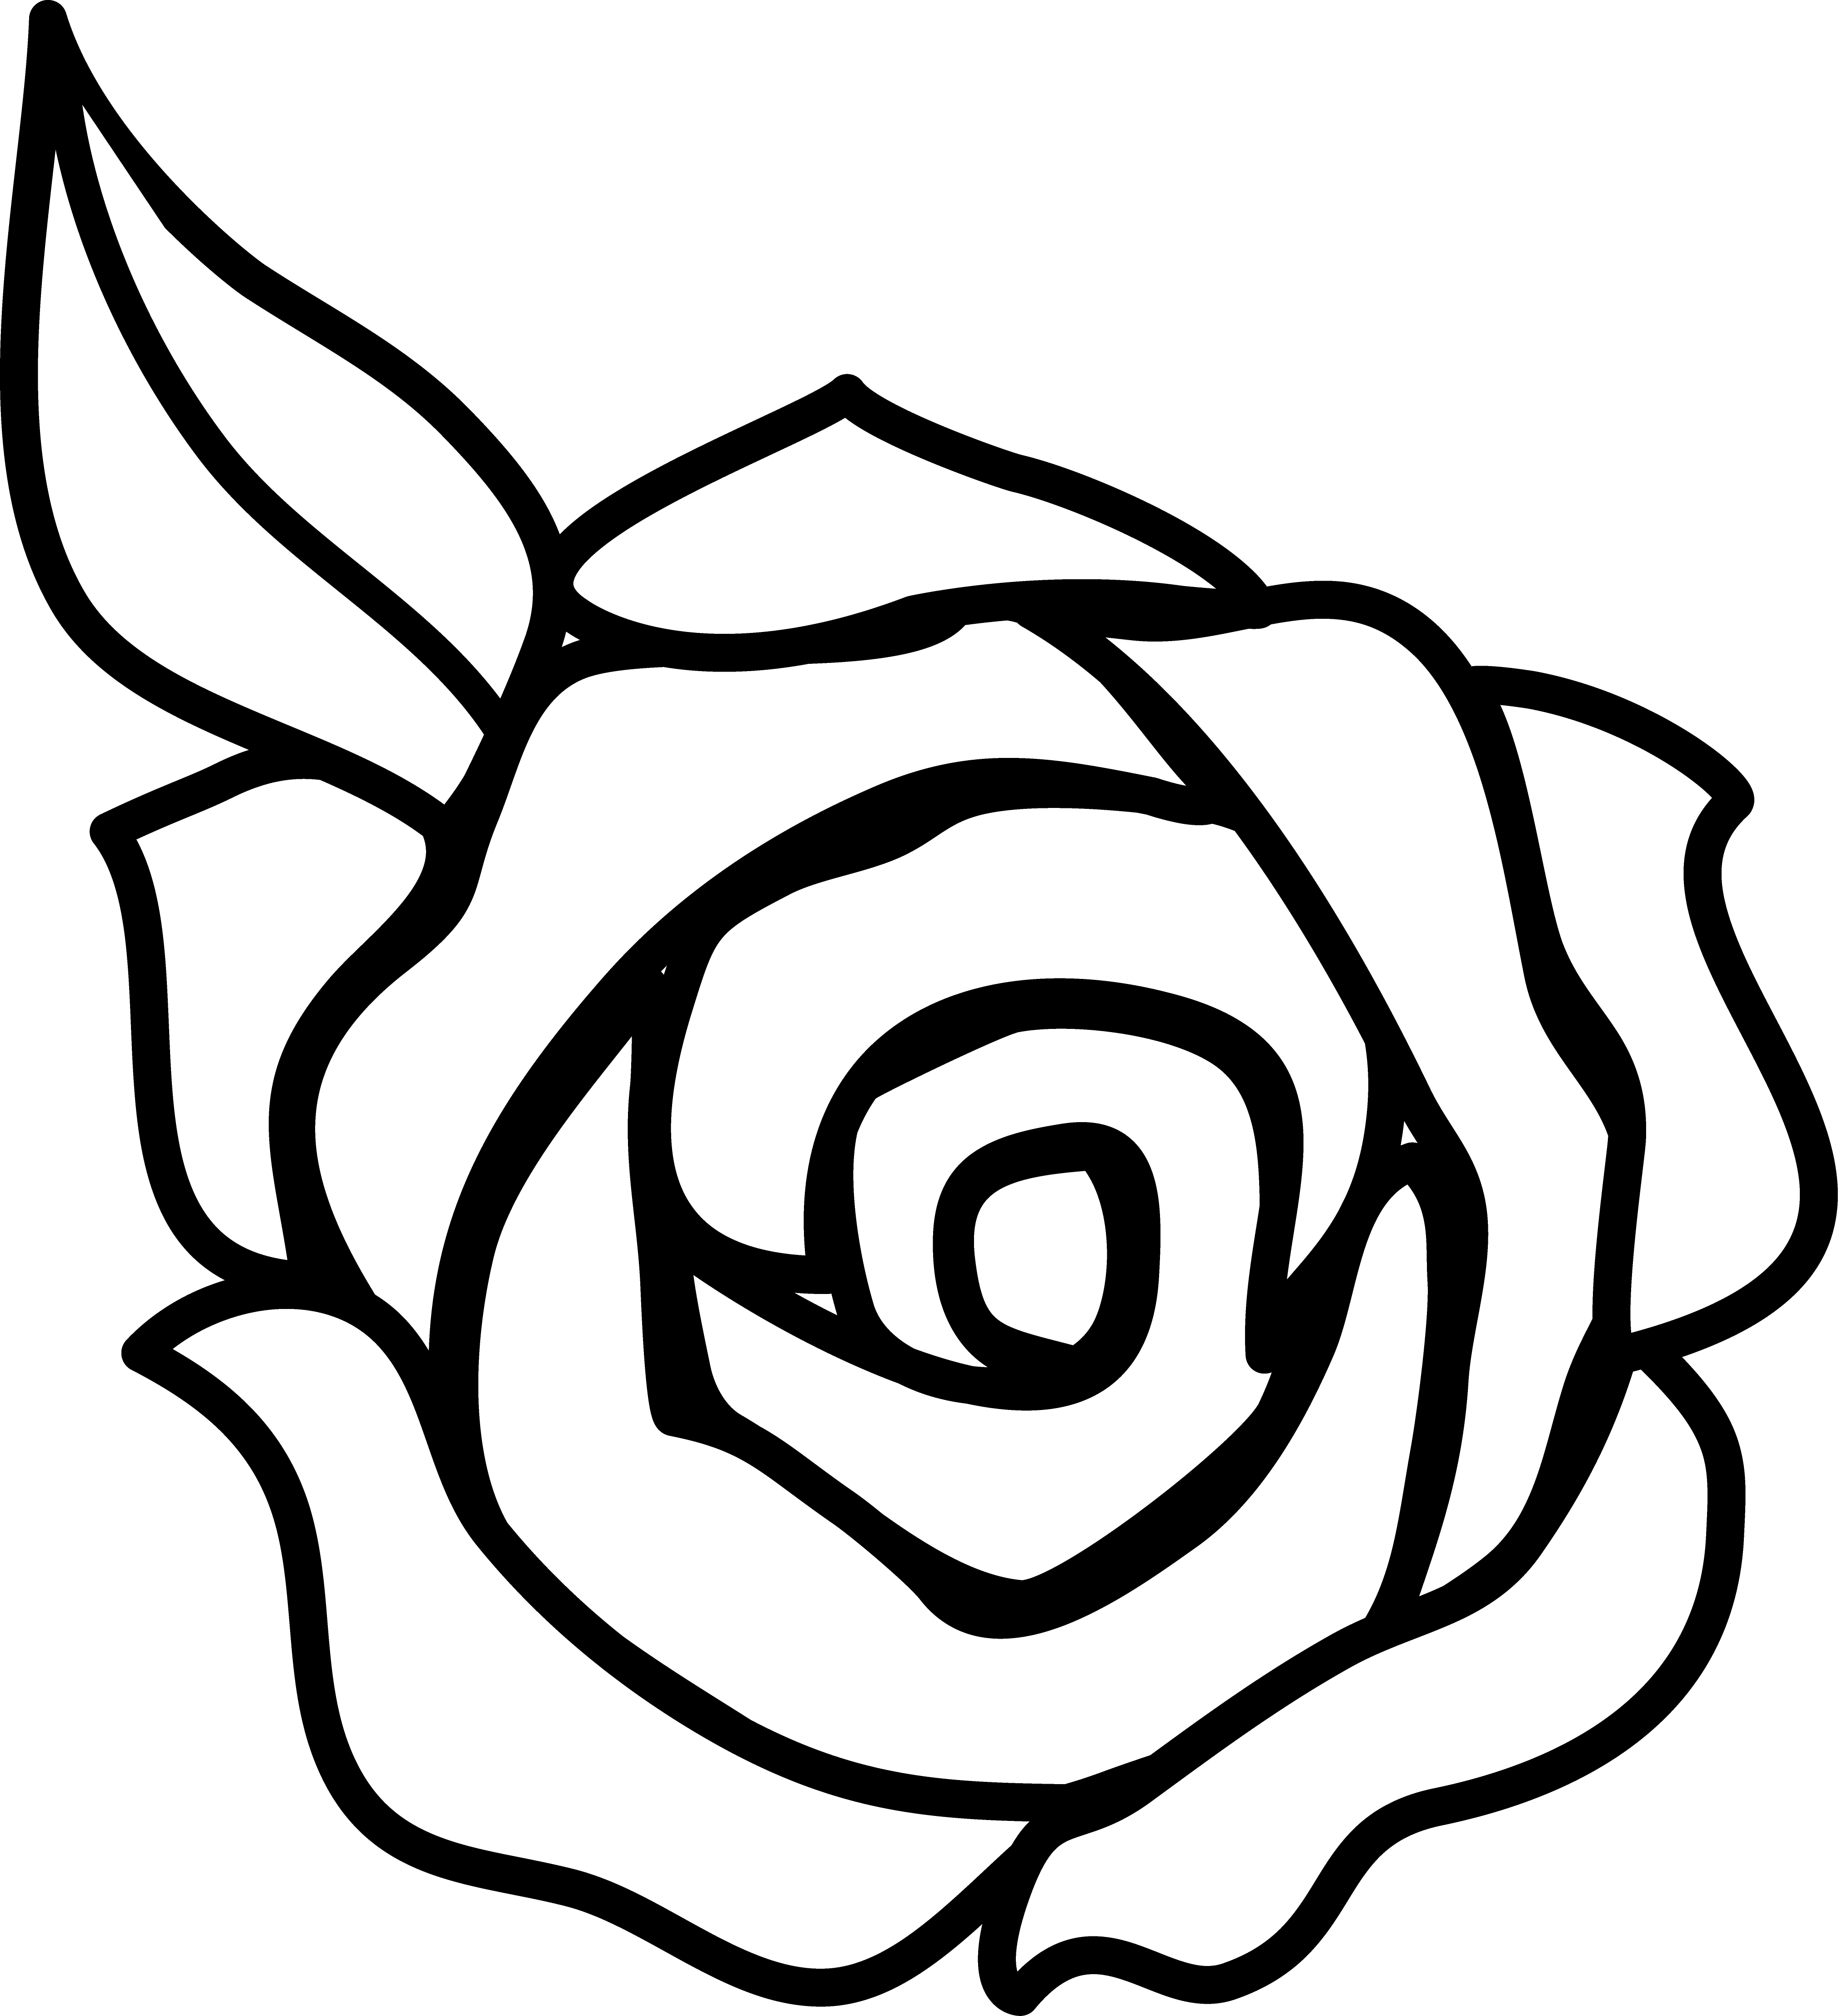 Roses rose clip art black and white free clipart images